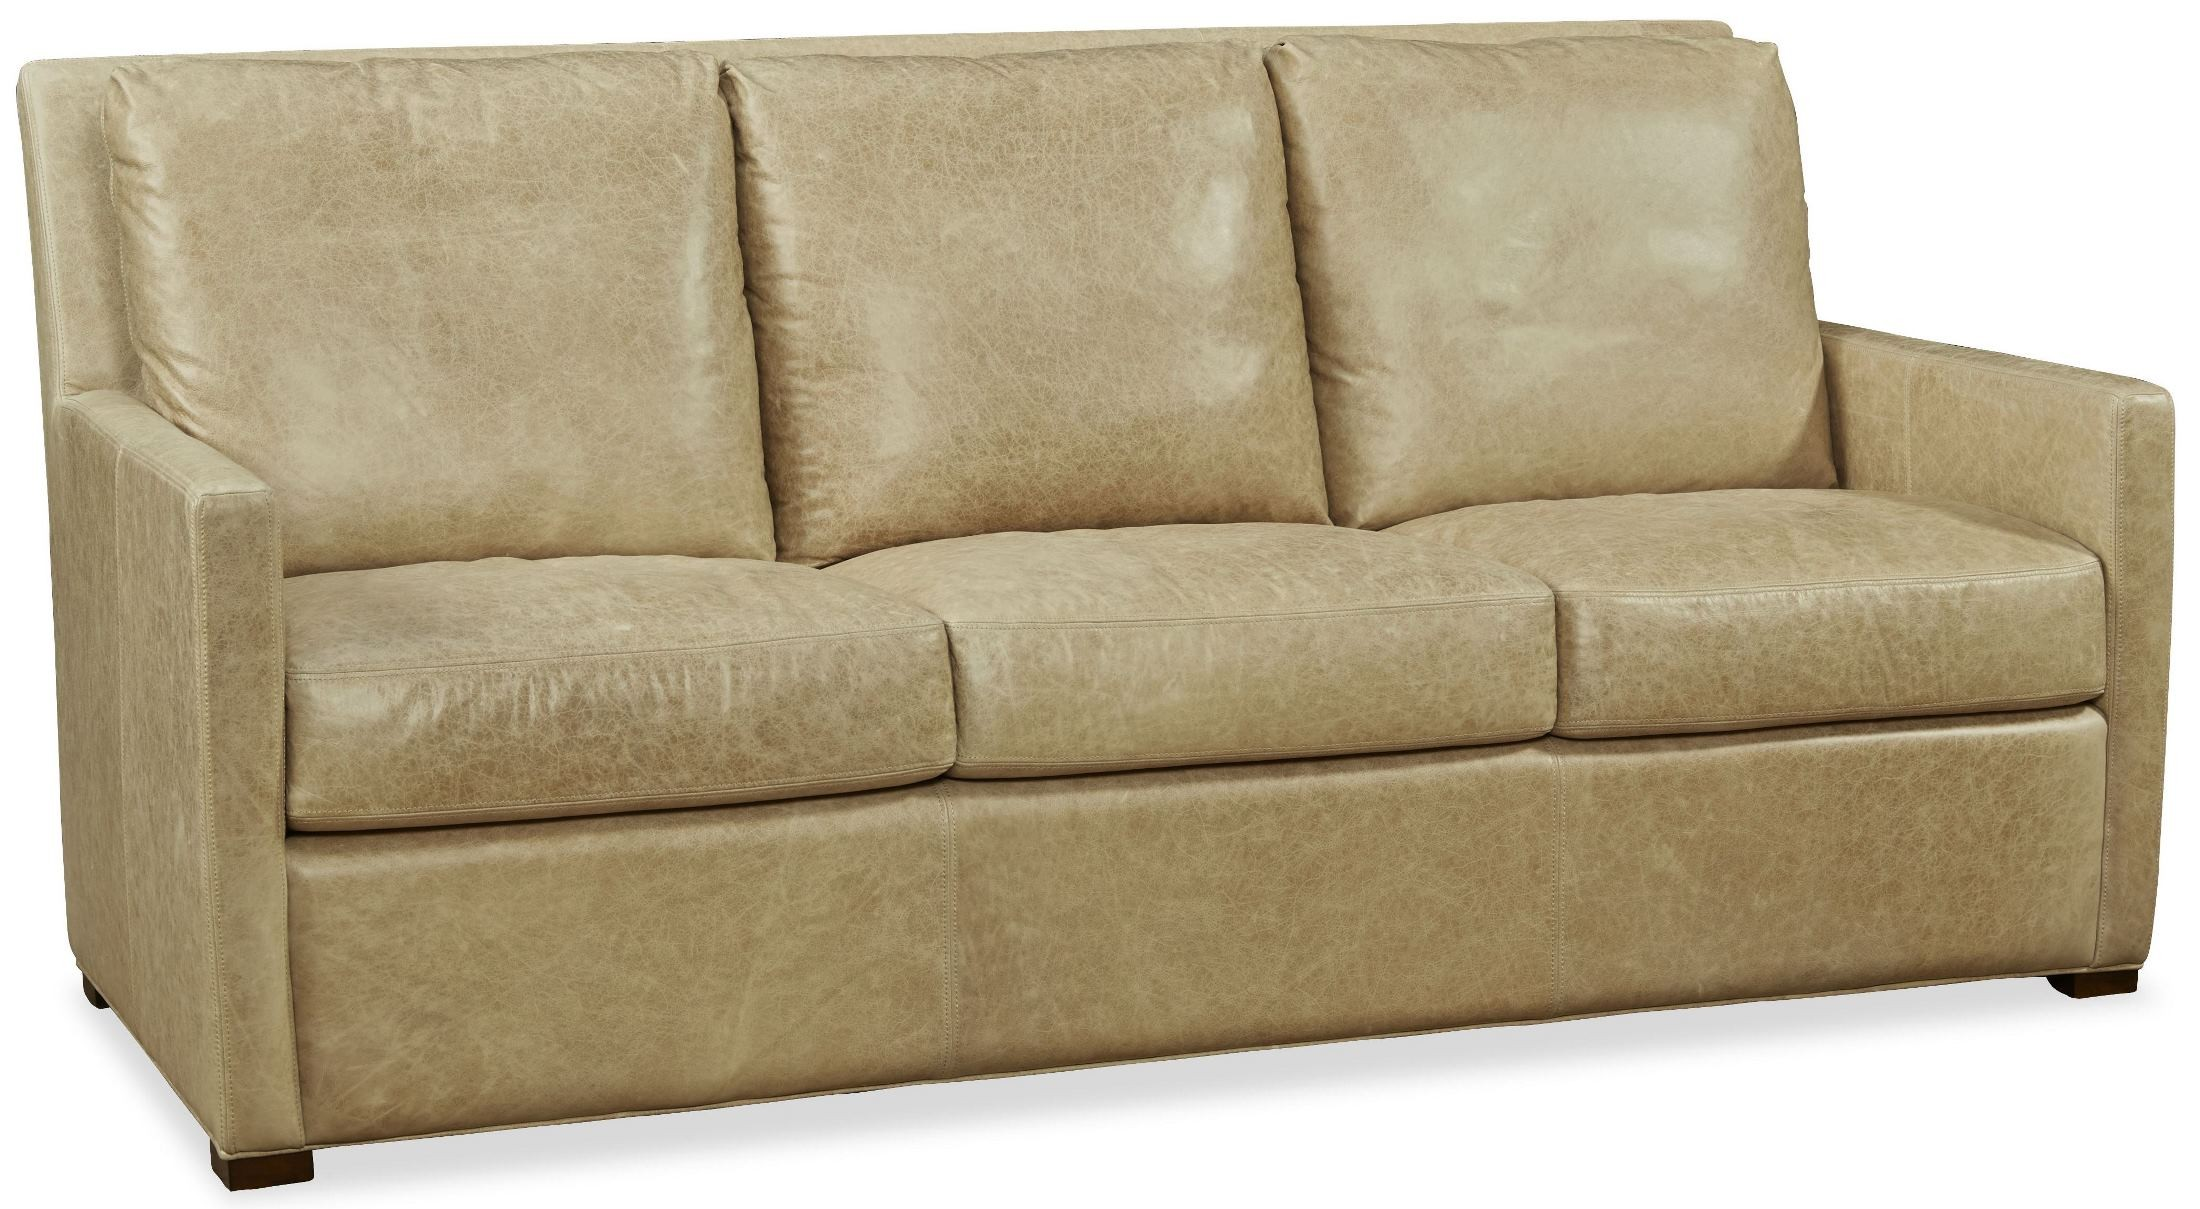 Charlotte desert sand leather sofa from palatial furniture for Sand leather sofa